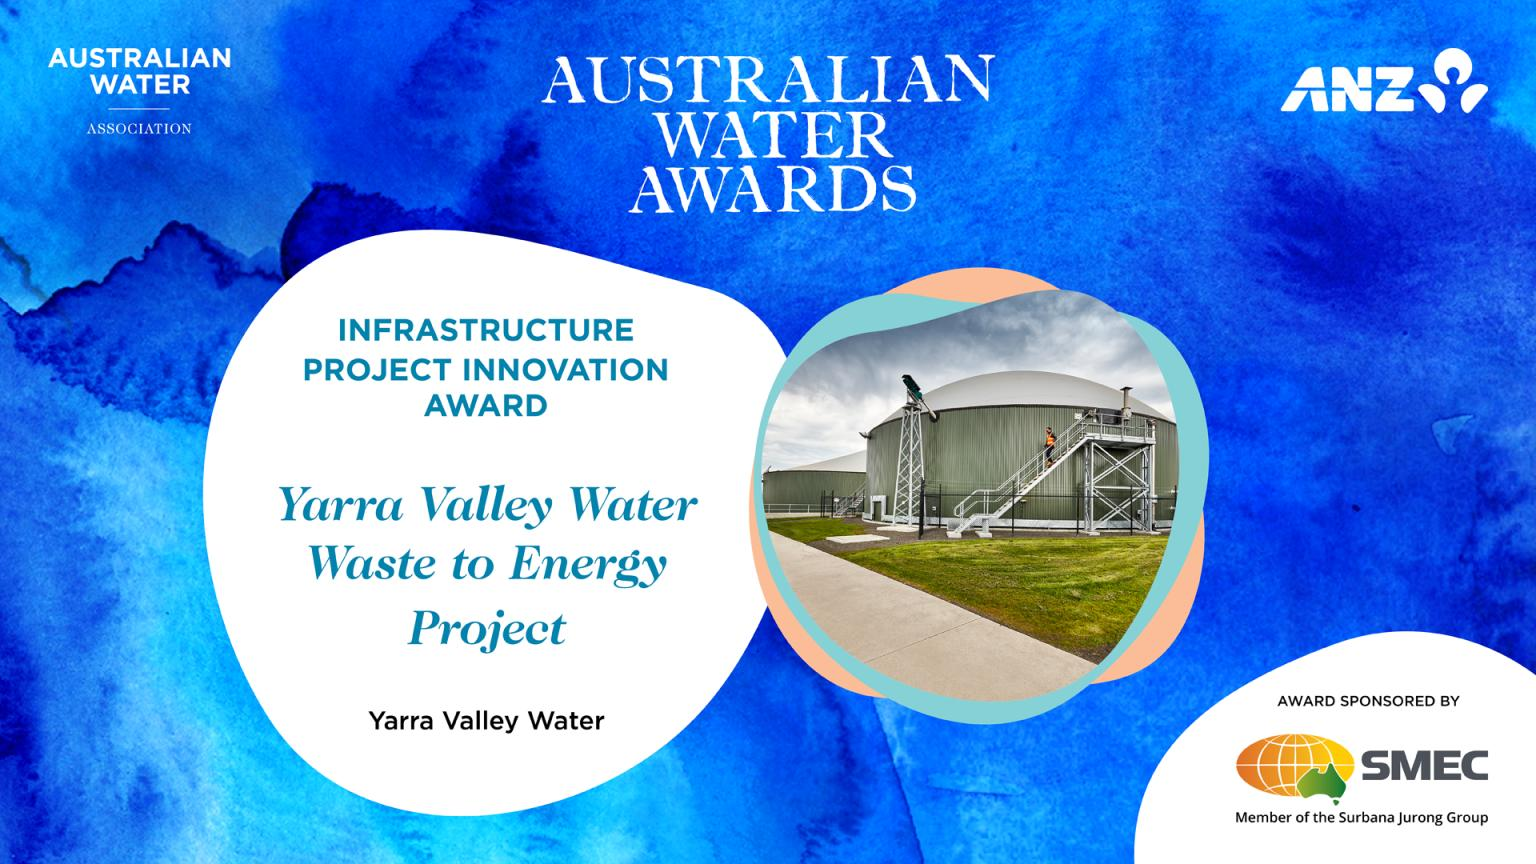 infrastructure project innovation award